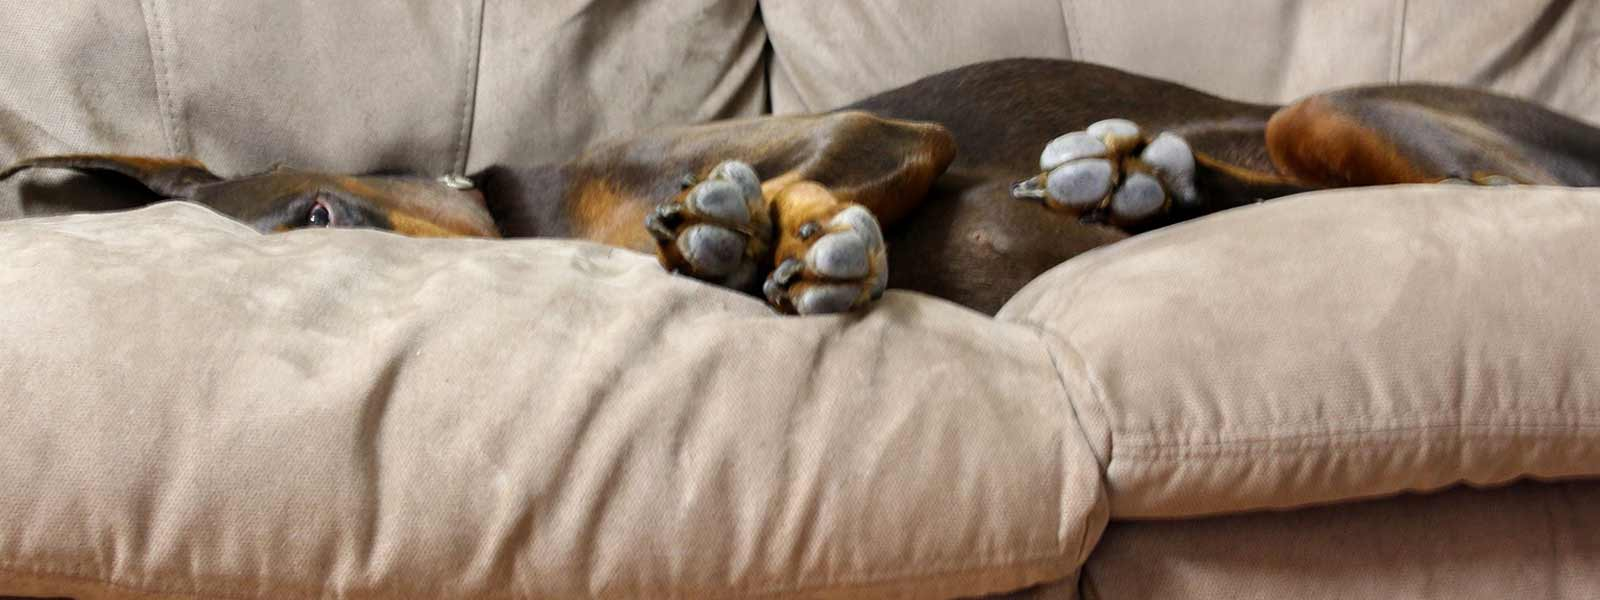 doberman pinscher asleep